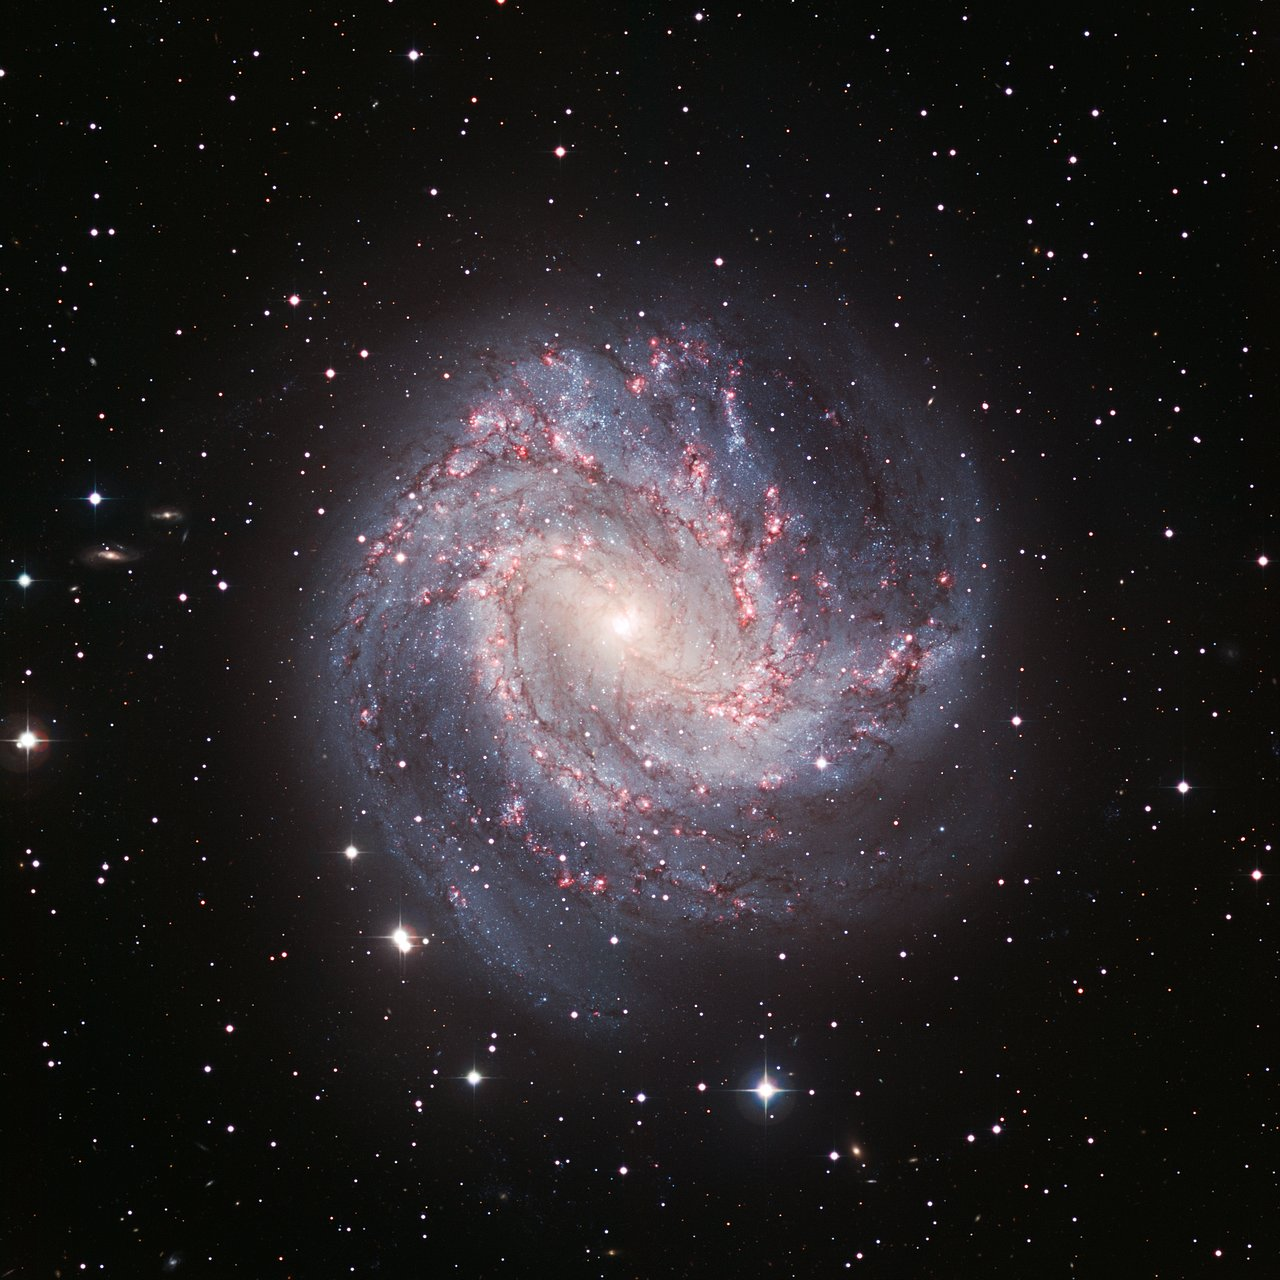 Nearby Spiral Galaxy Seen in the Infrared by Spitzer Space ...